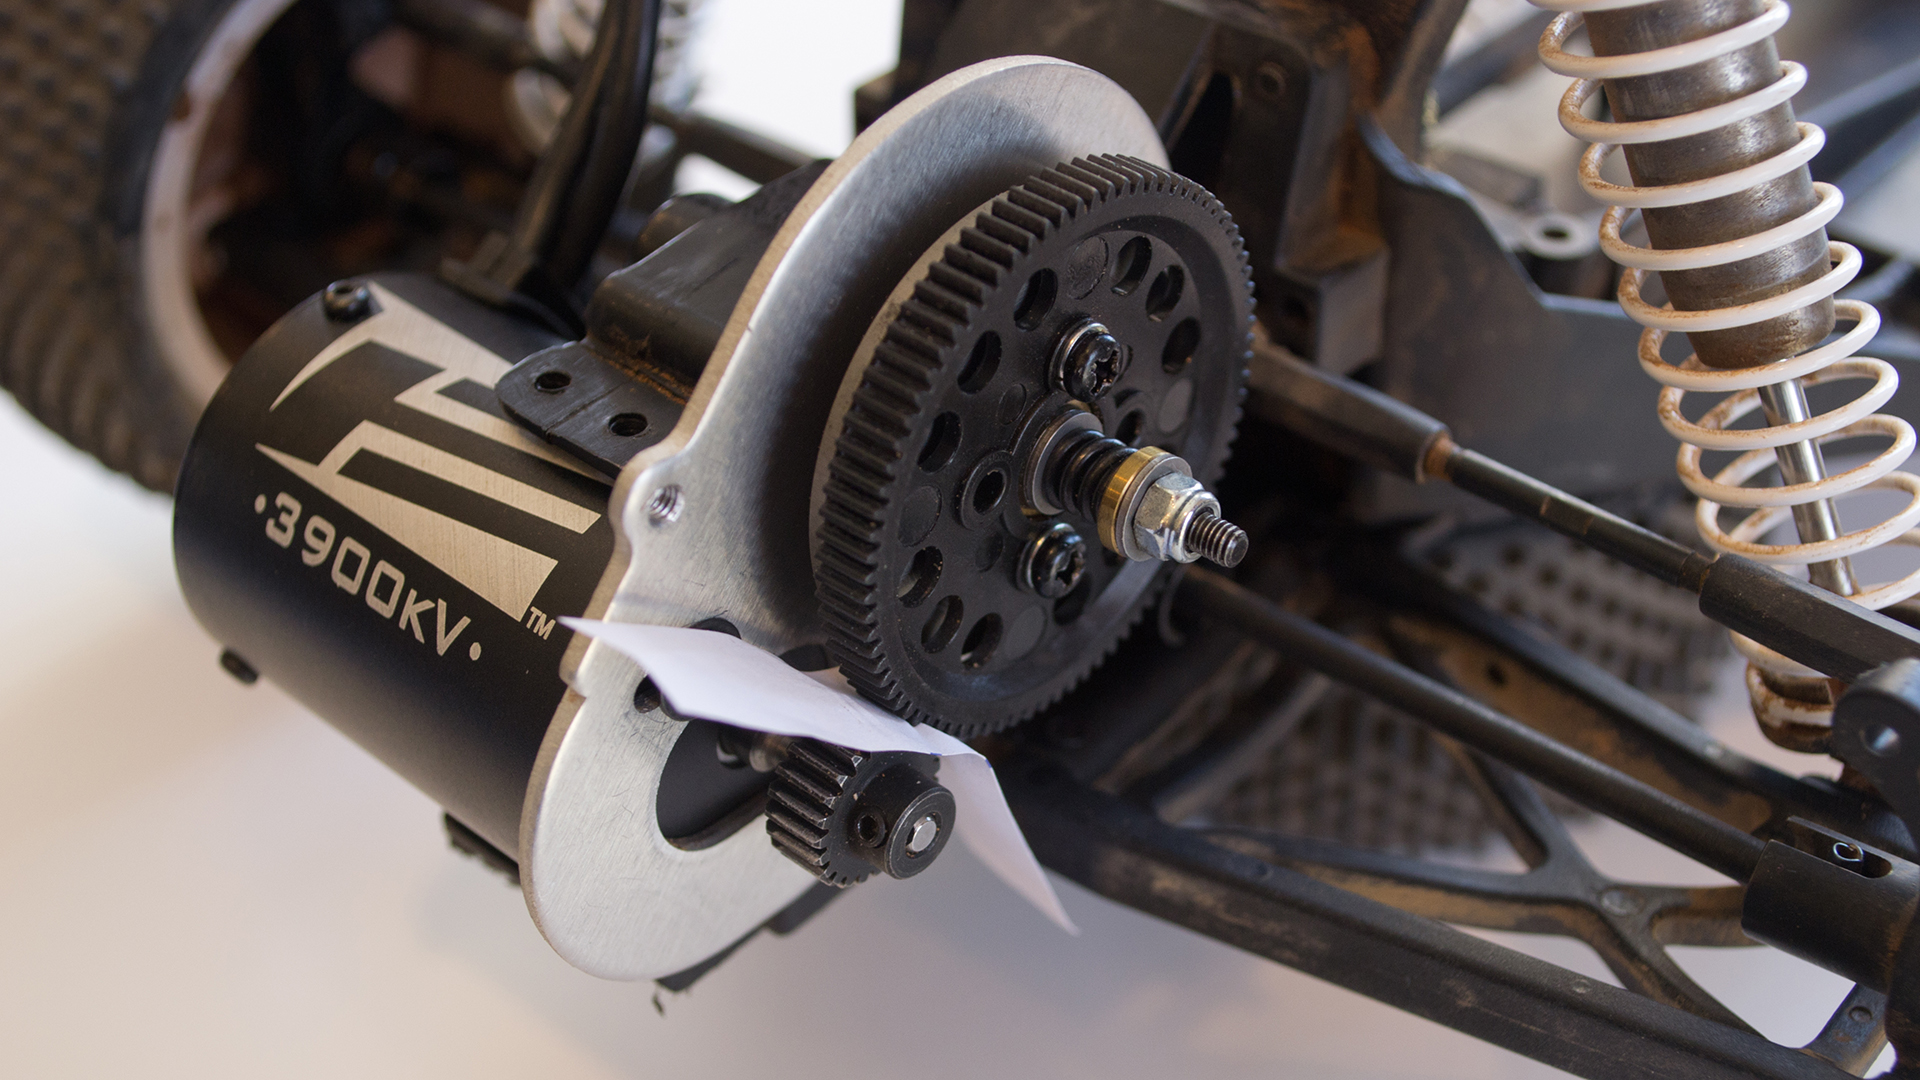 How To Get Into Hobby Rc Upgrading Your Car And Batteries